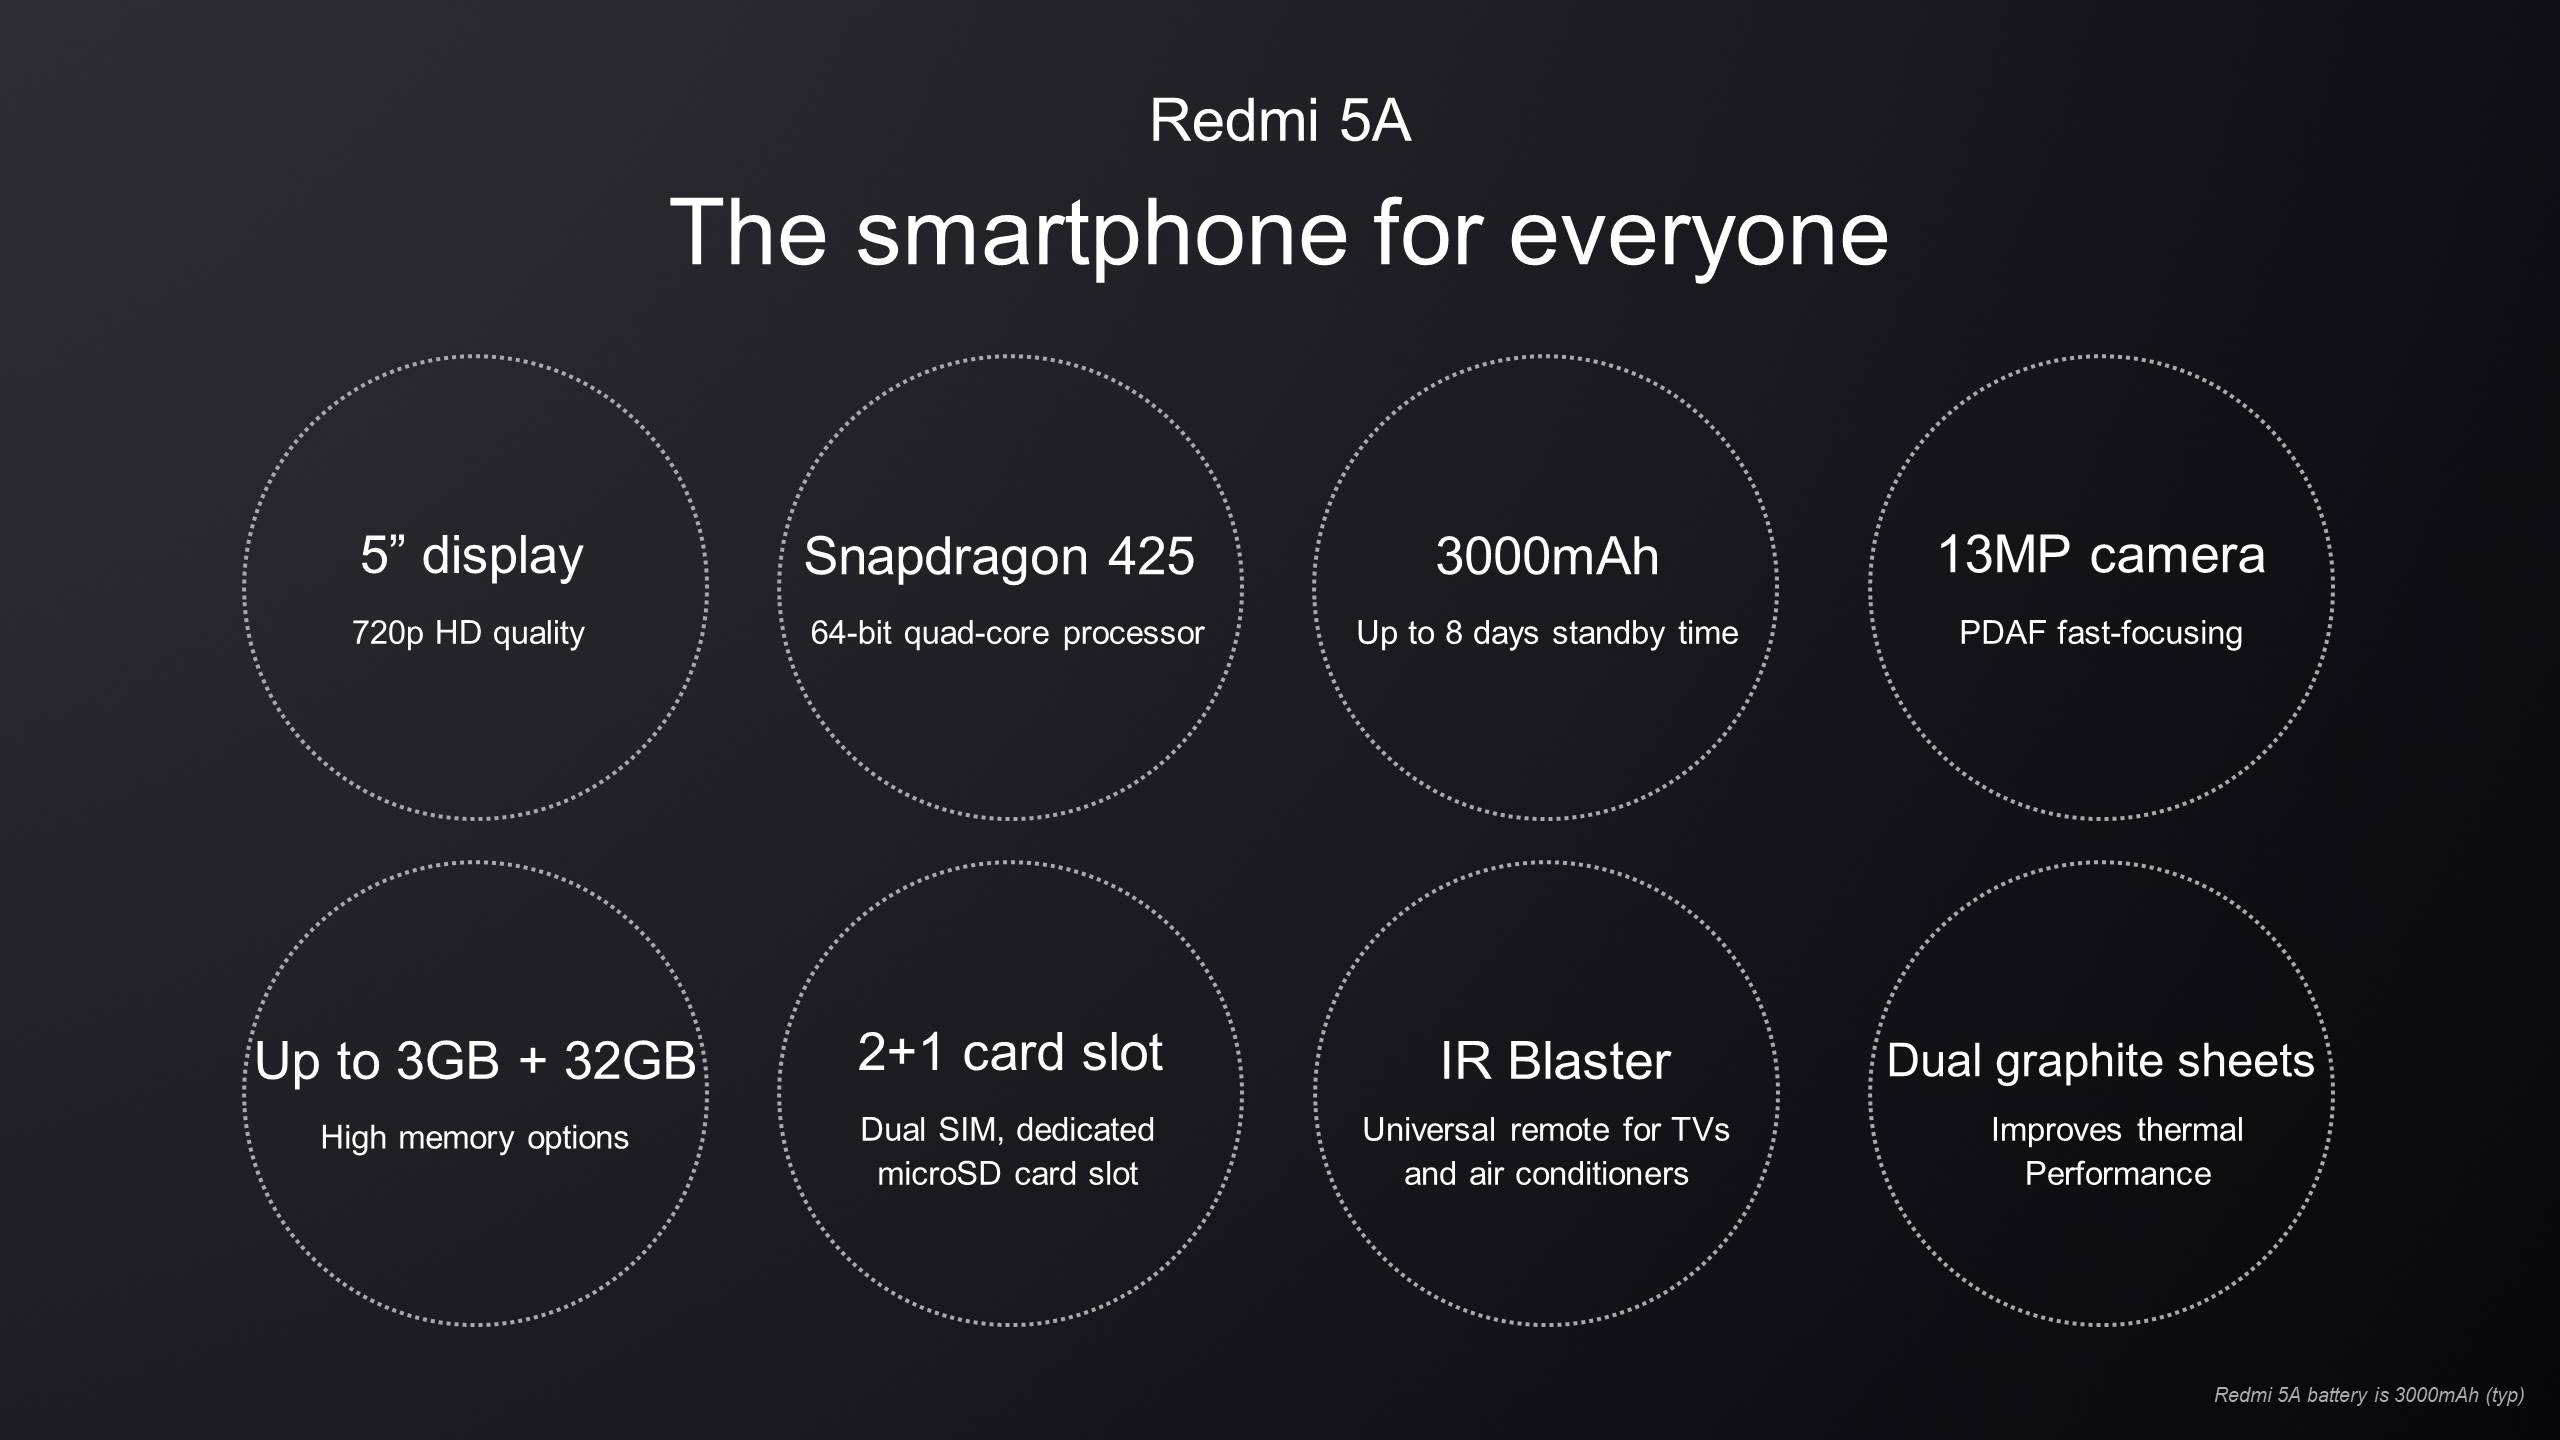 Xiaomi Redmi 5A launched in India, pricing starts at Rs. 4,999 1